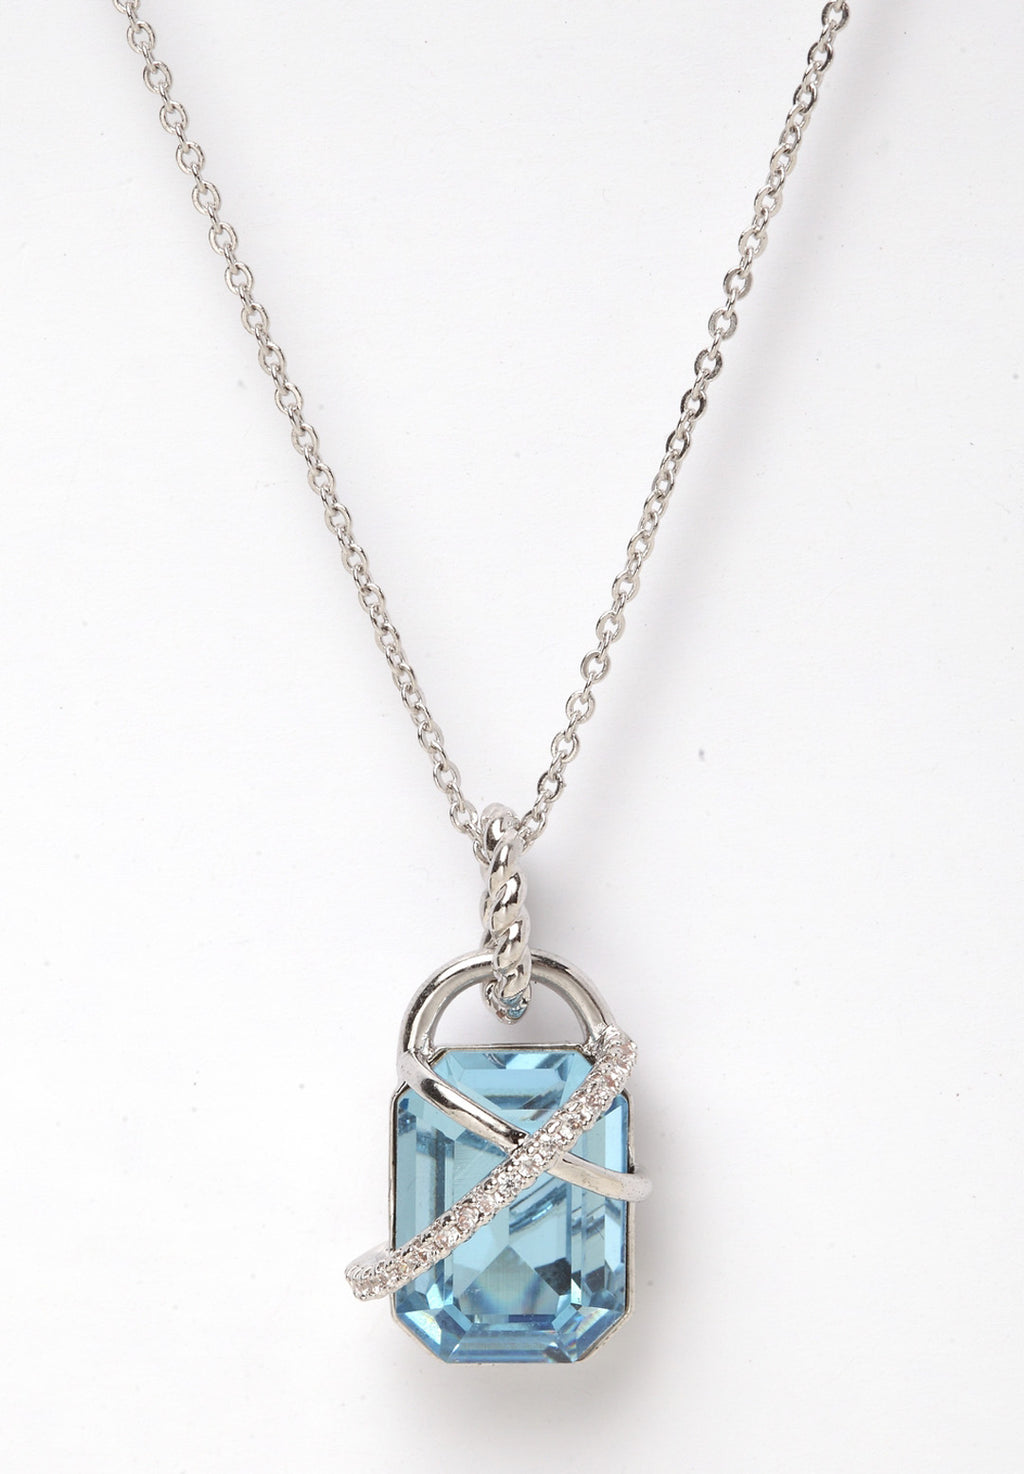 Avant-Garde Paris Crystallized with Swarovski Geometric Pendant